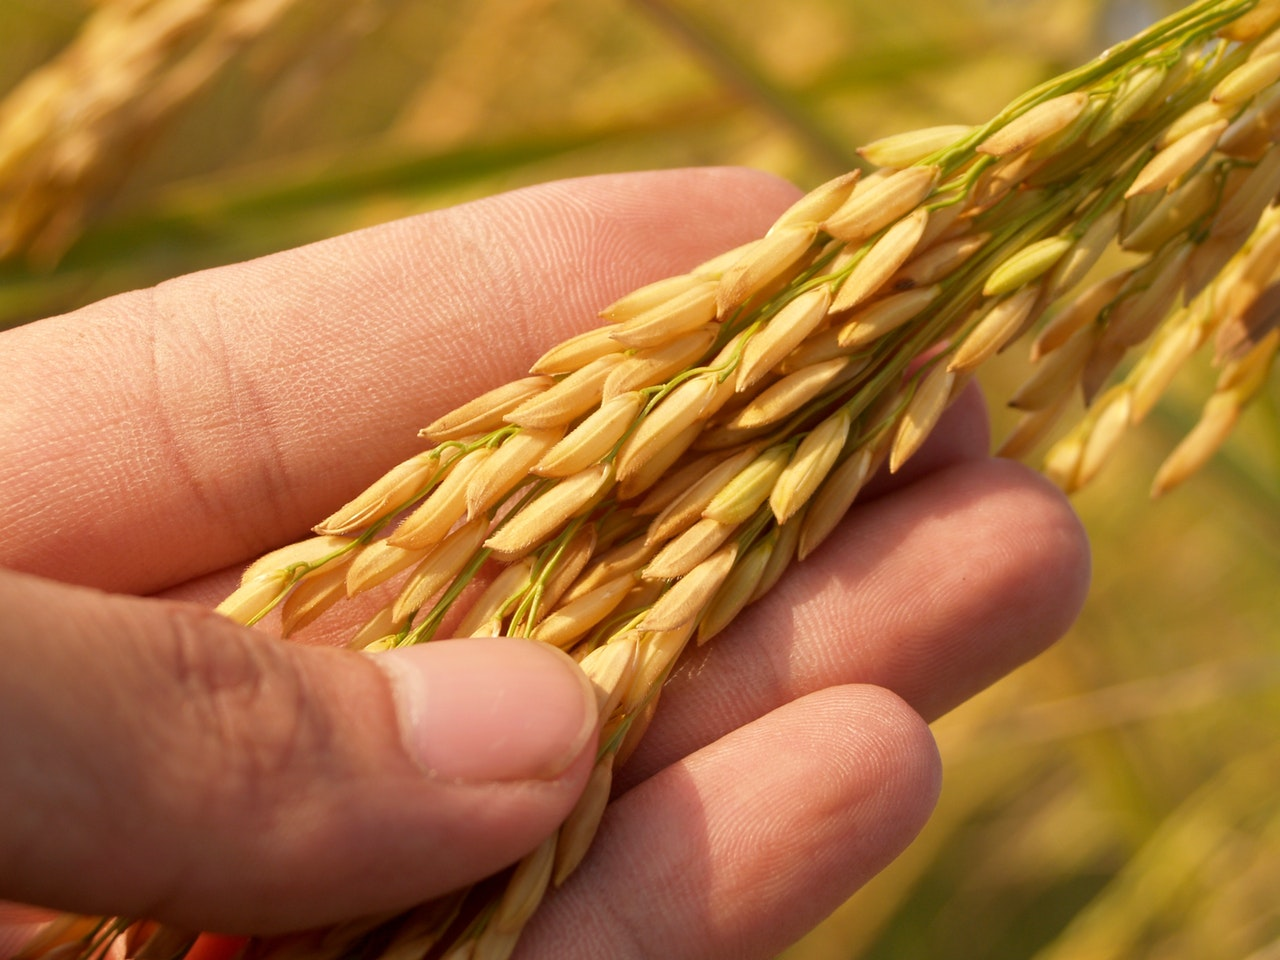 Golden paddy are more expensive